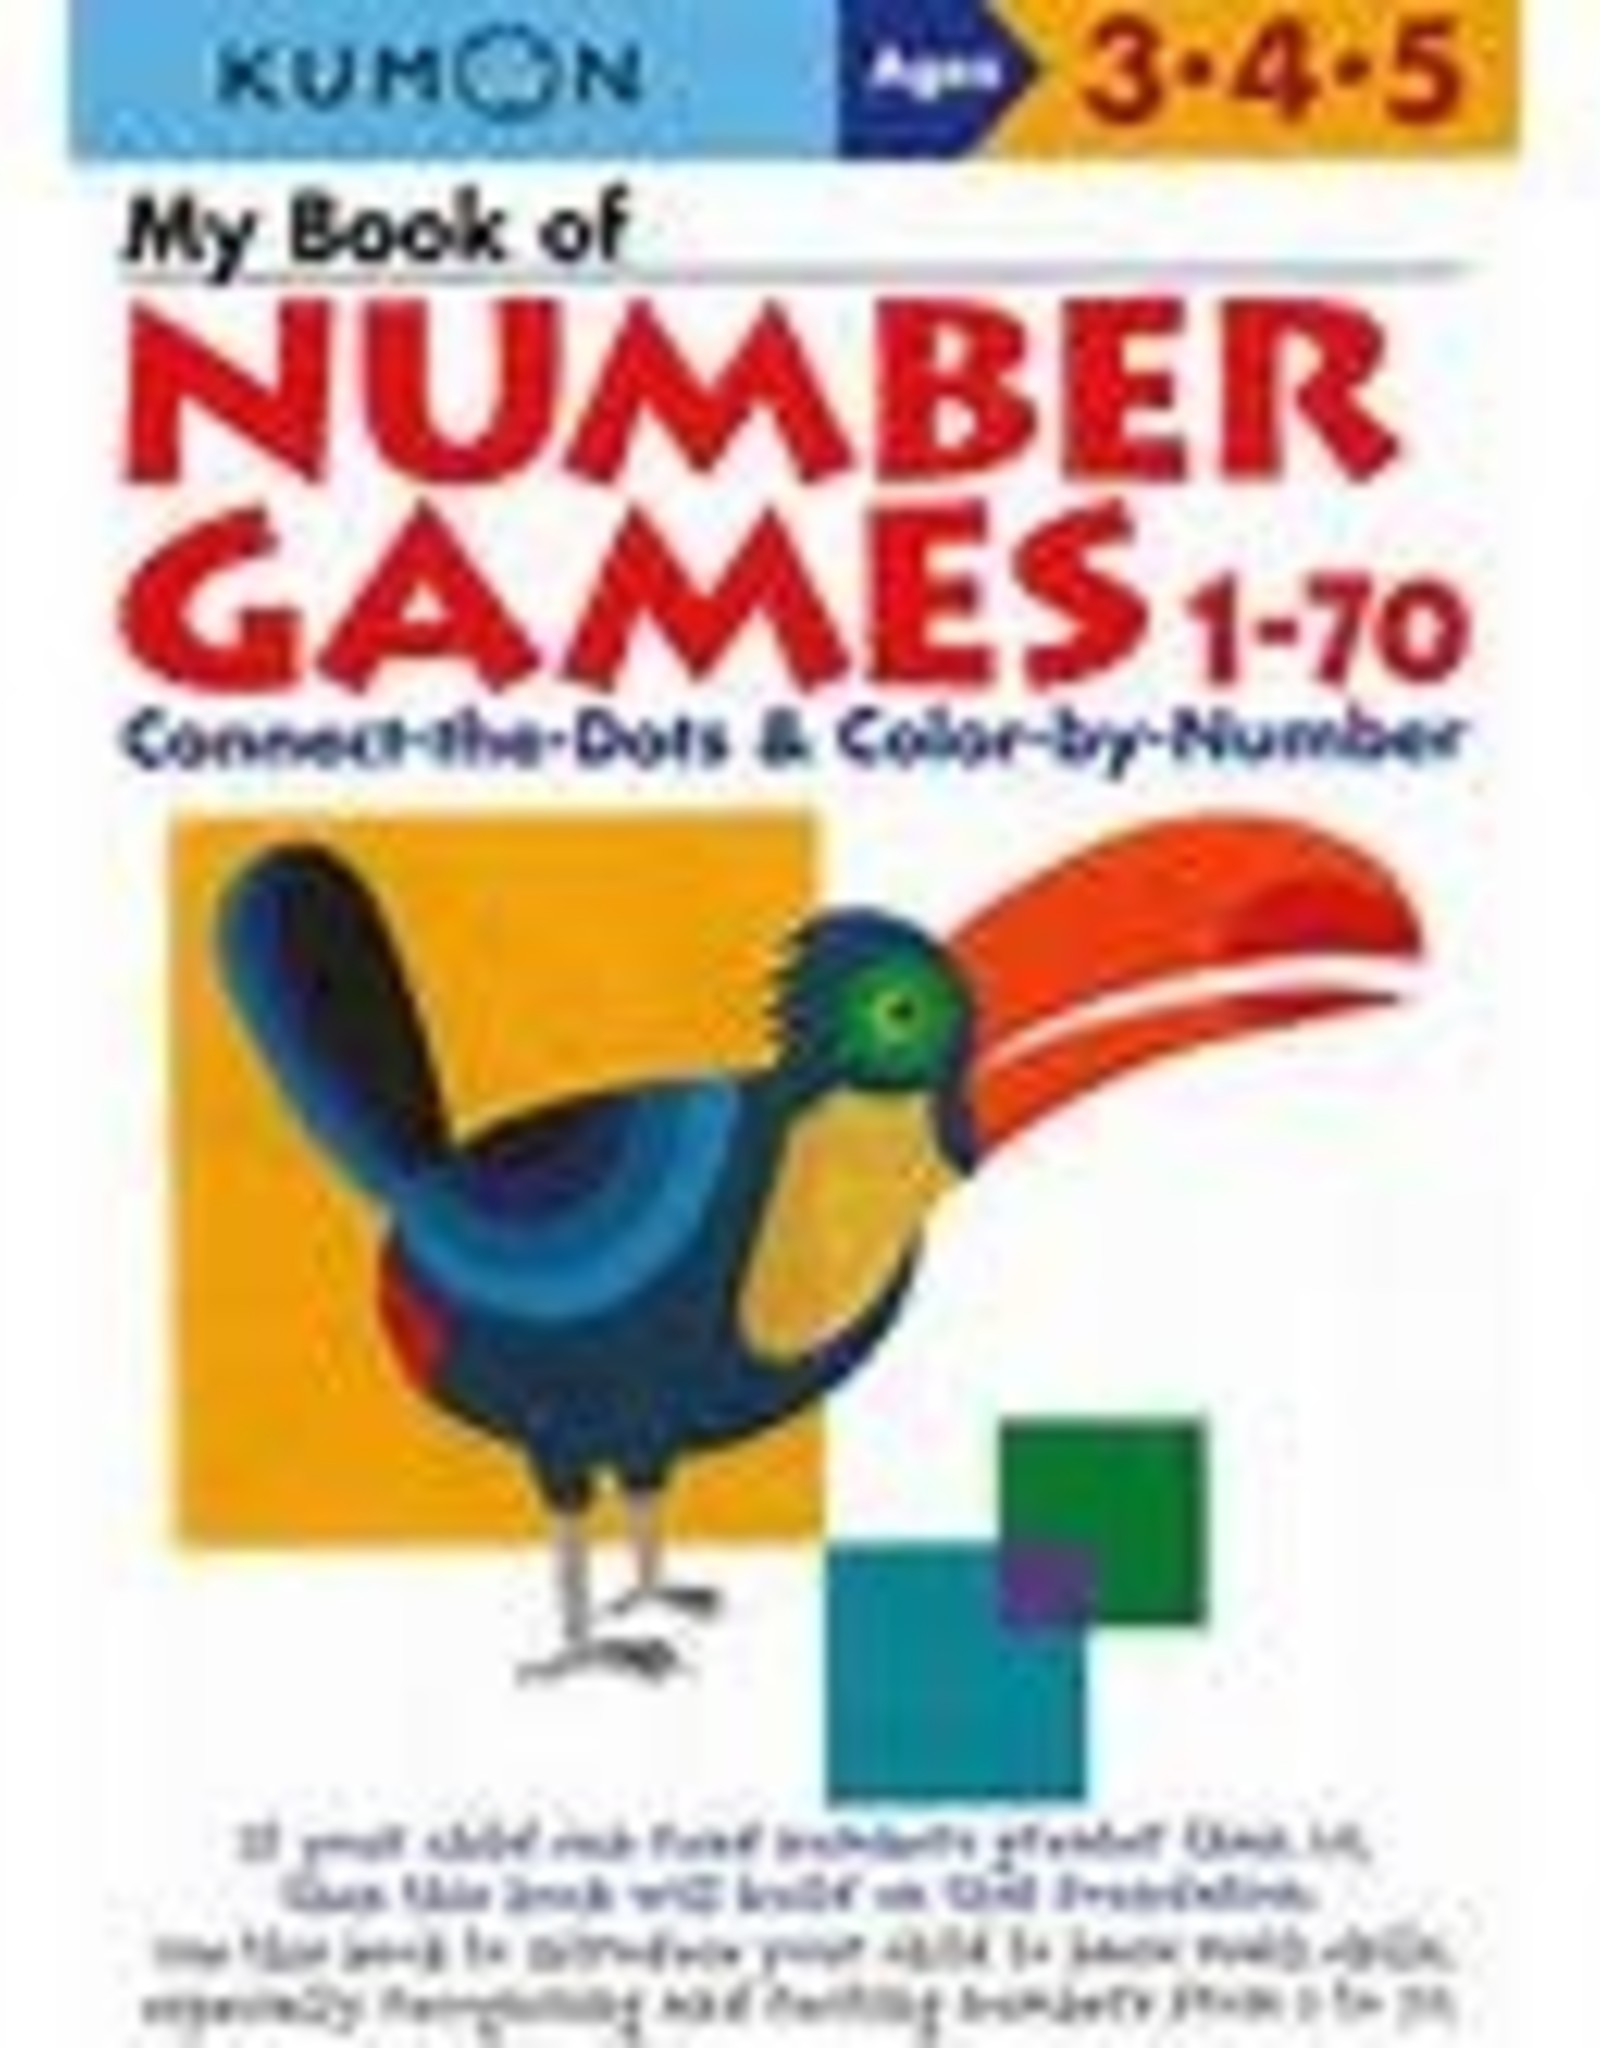 Kumon My Book of Number Games 1-70